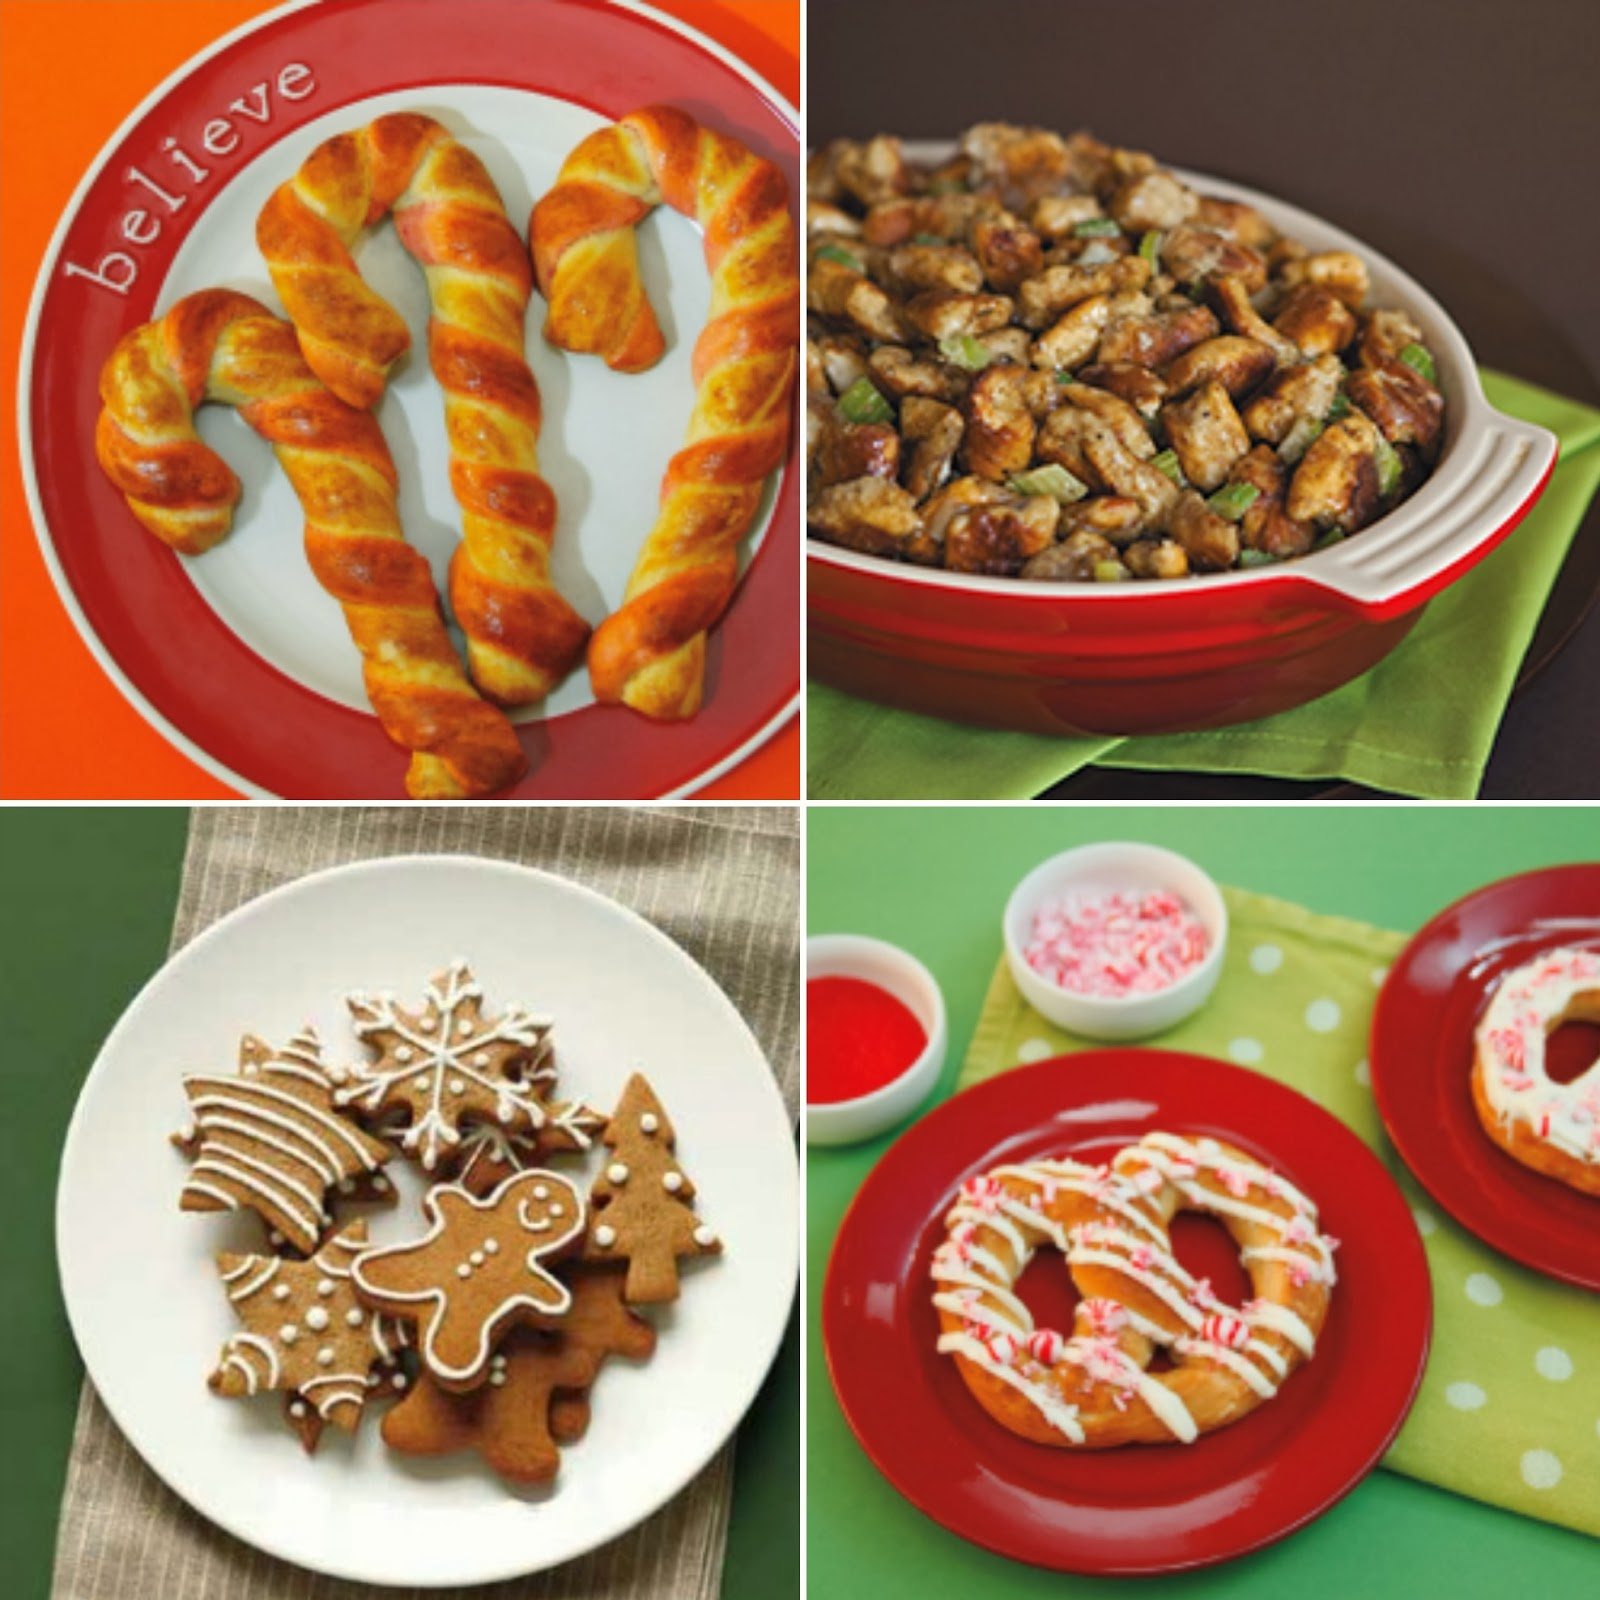 Auntie Anne's holiday recipes